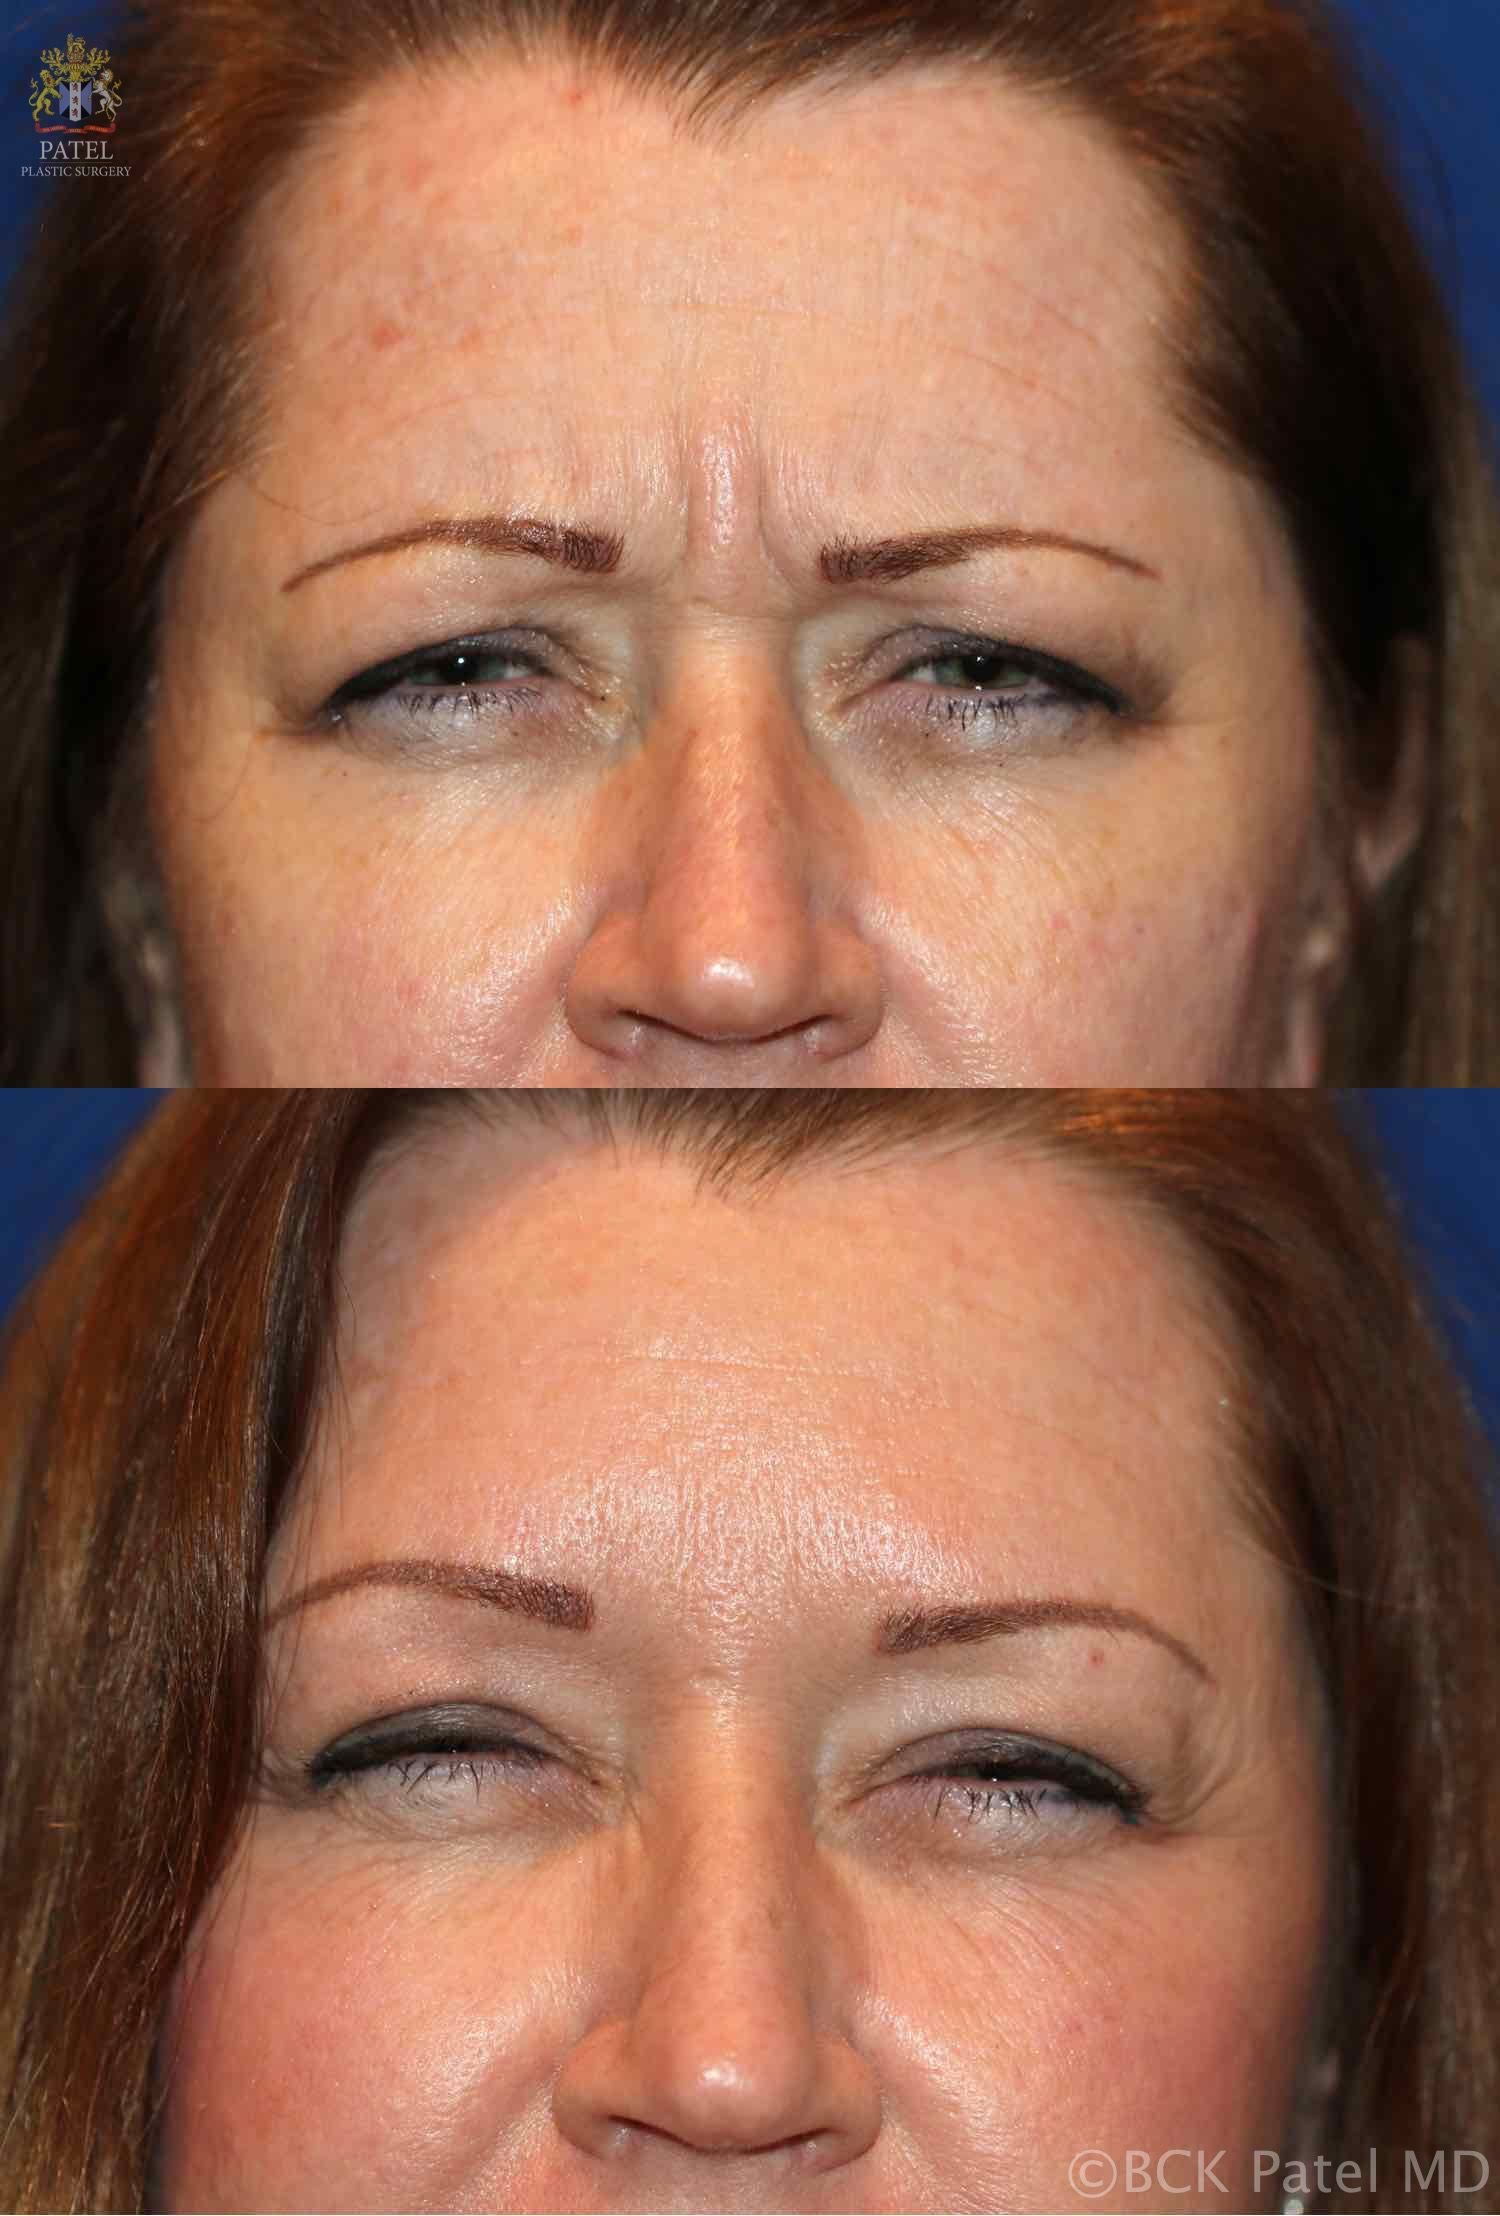 englishsurgeon.com. Photos showing the improvement of the frown lines